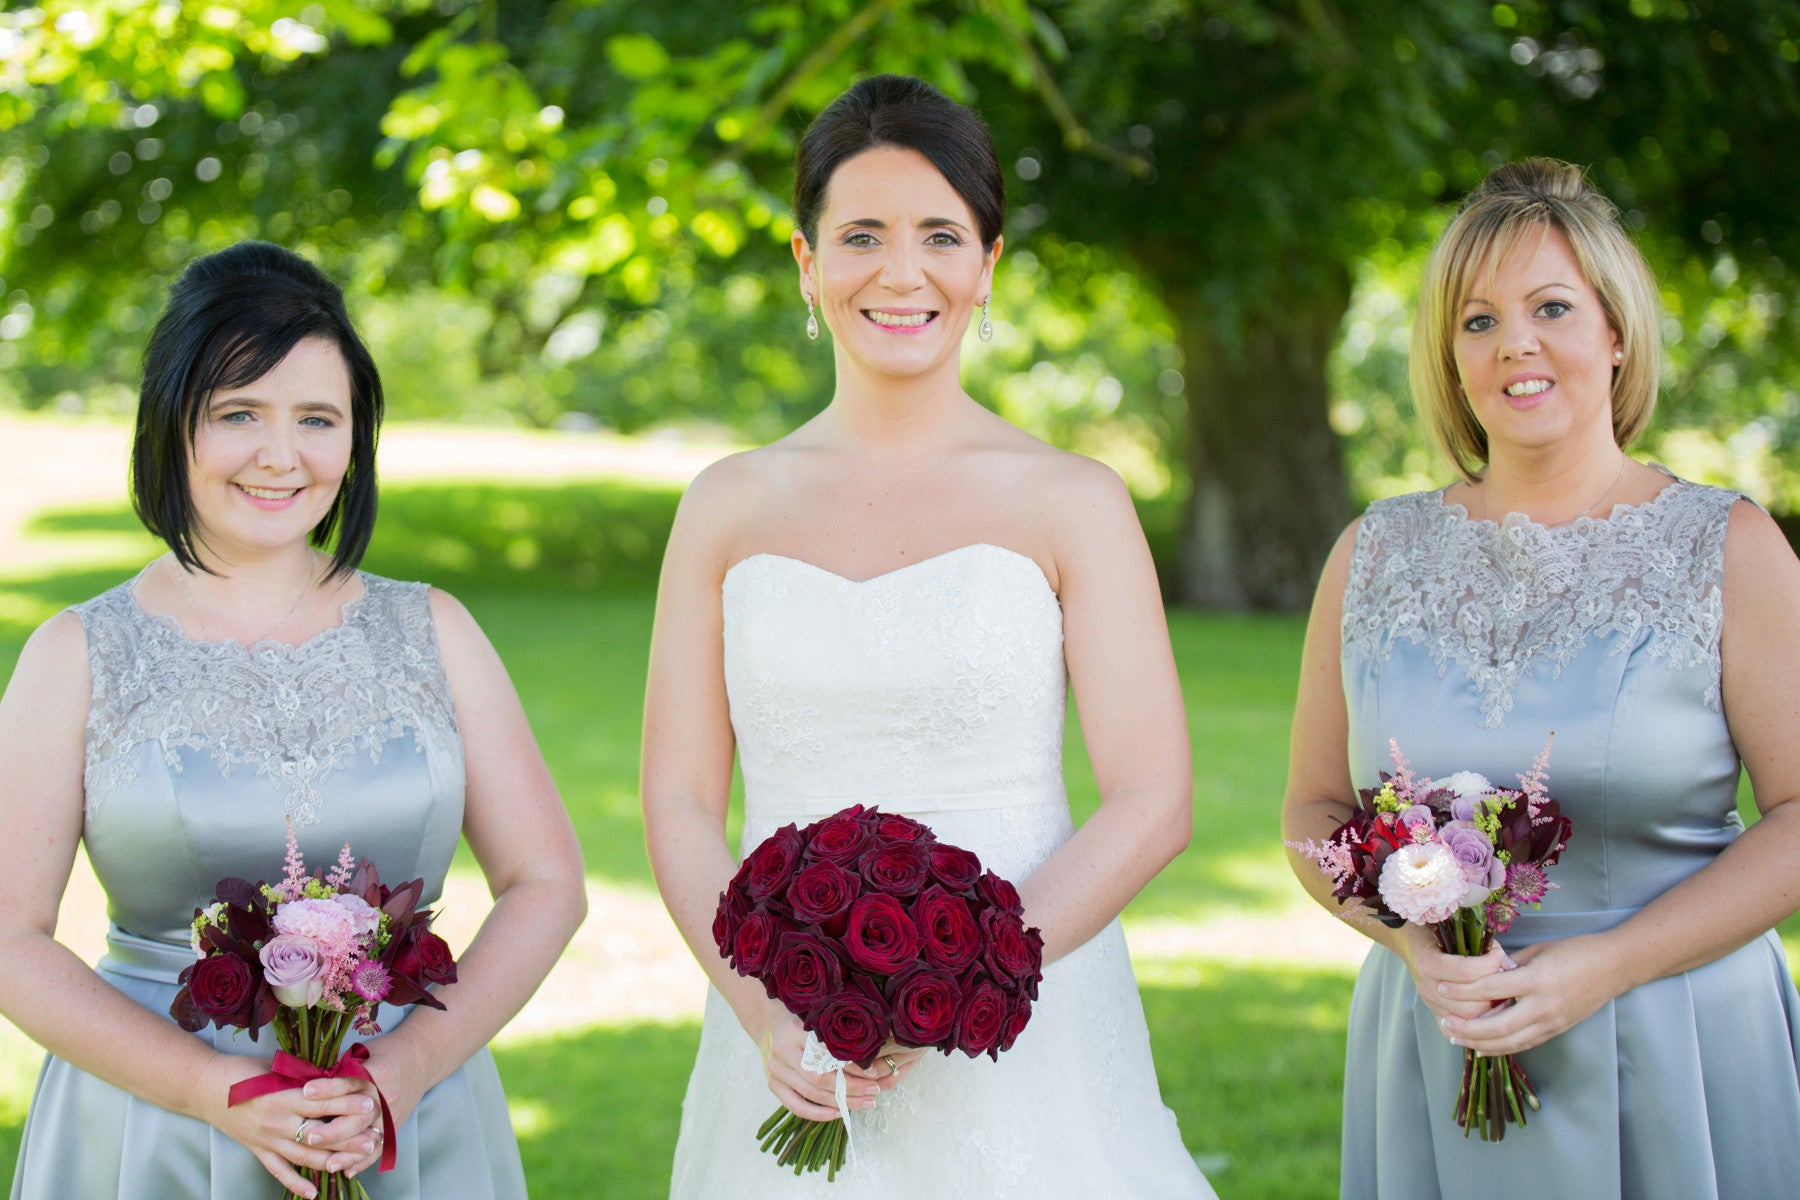 Black Bacarra Rose Bridal Hand-tied with Bridesmaids - XOXO Florist